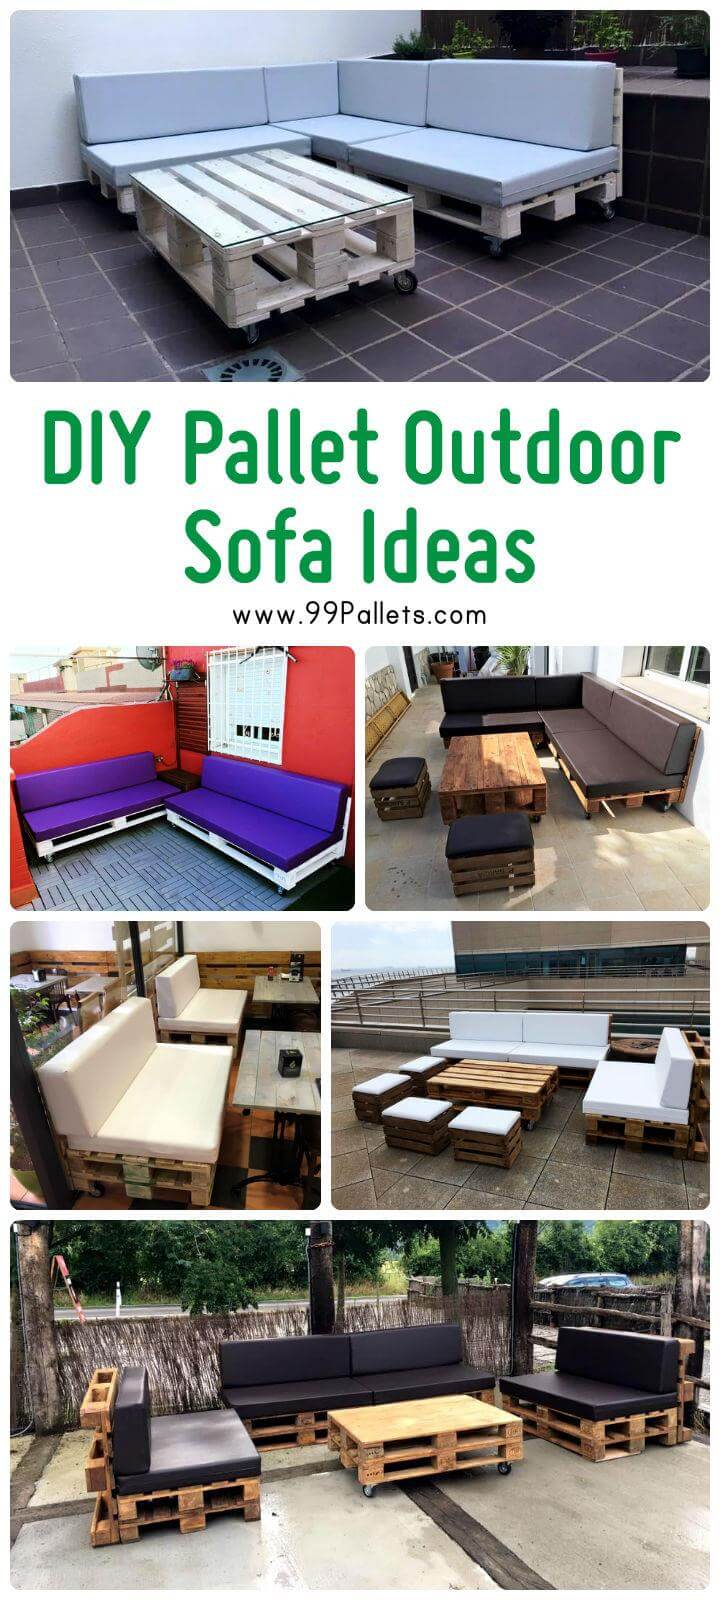 Diy outdoor patio furniture from pallets 99 pallets - Pallet Sofa